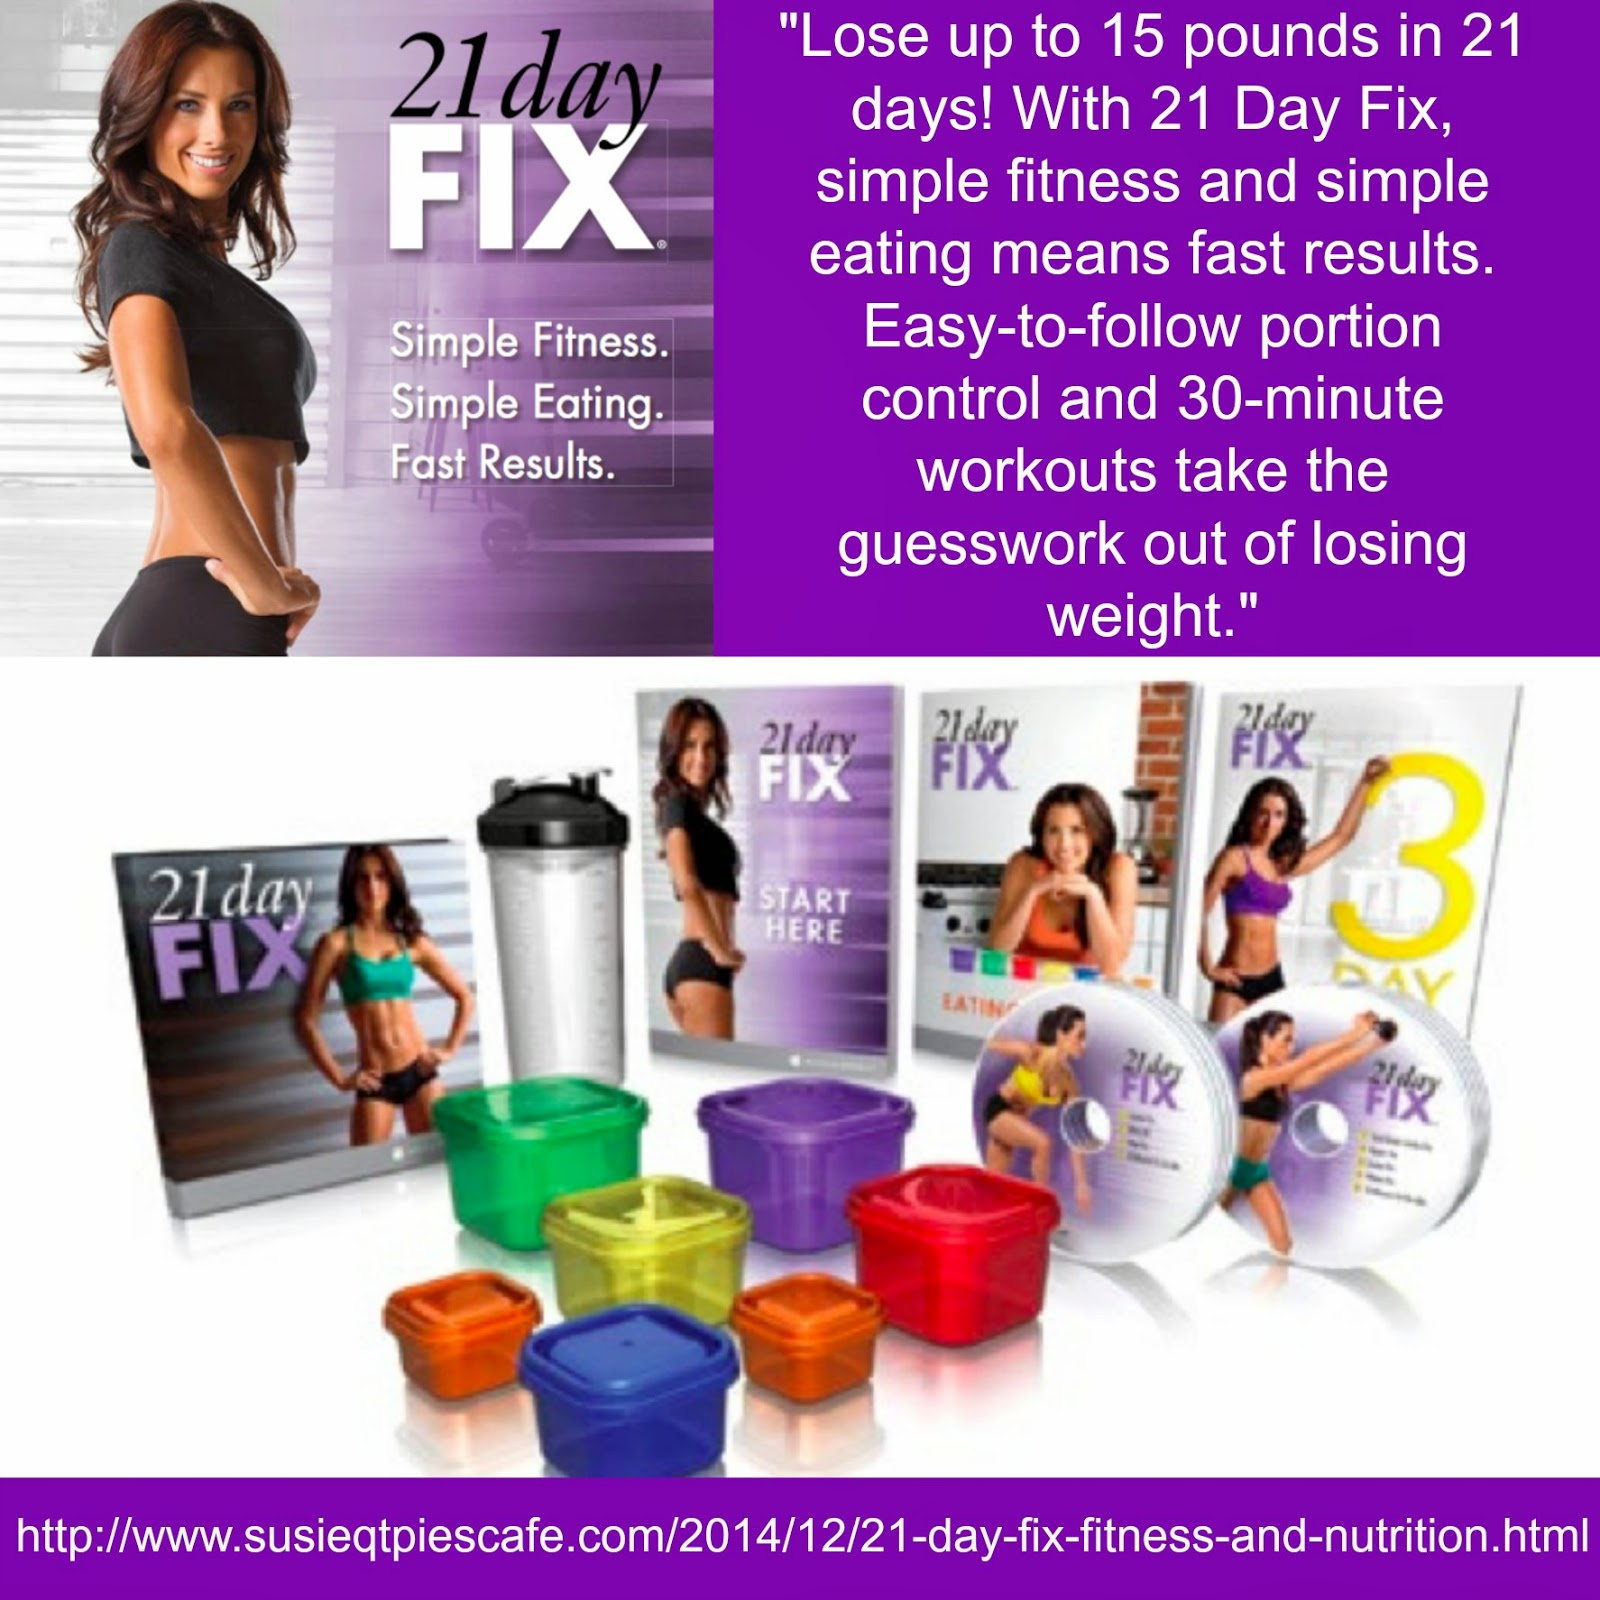 Susieqtpies Cafe Why All The Buzz On The 21 Day Fix Fitness And